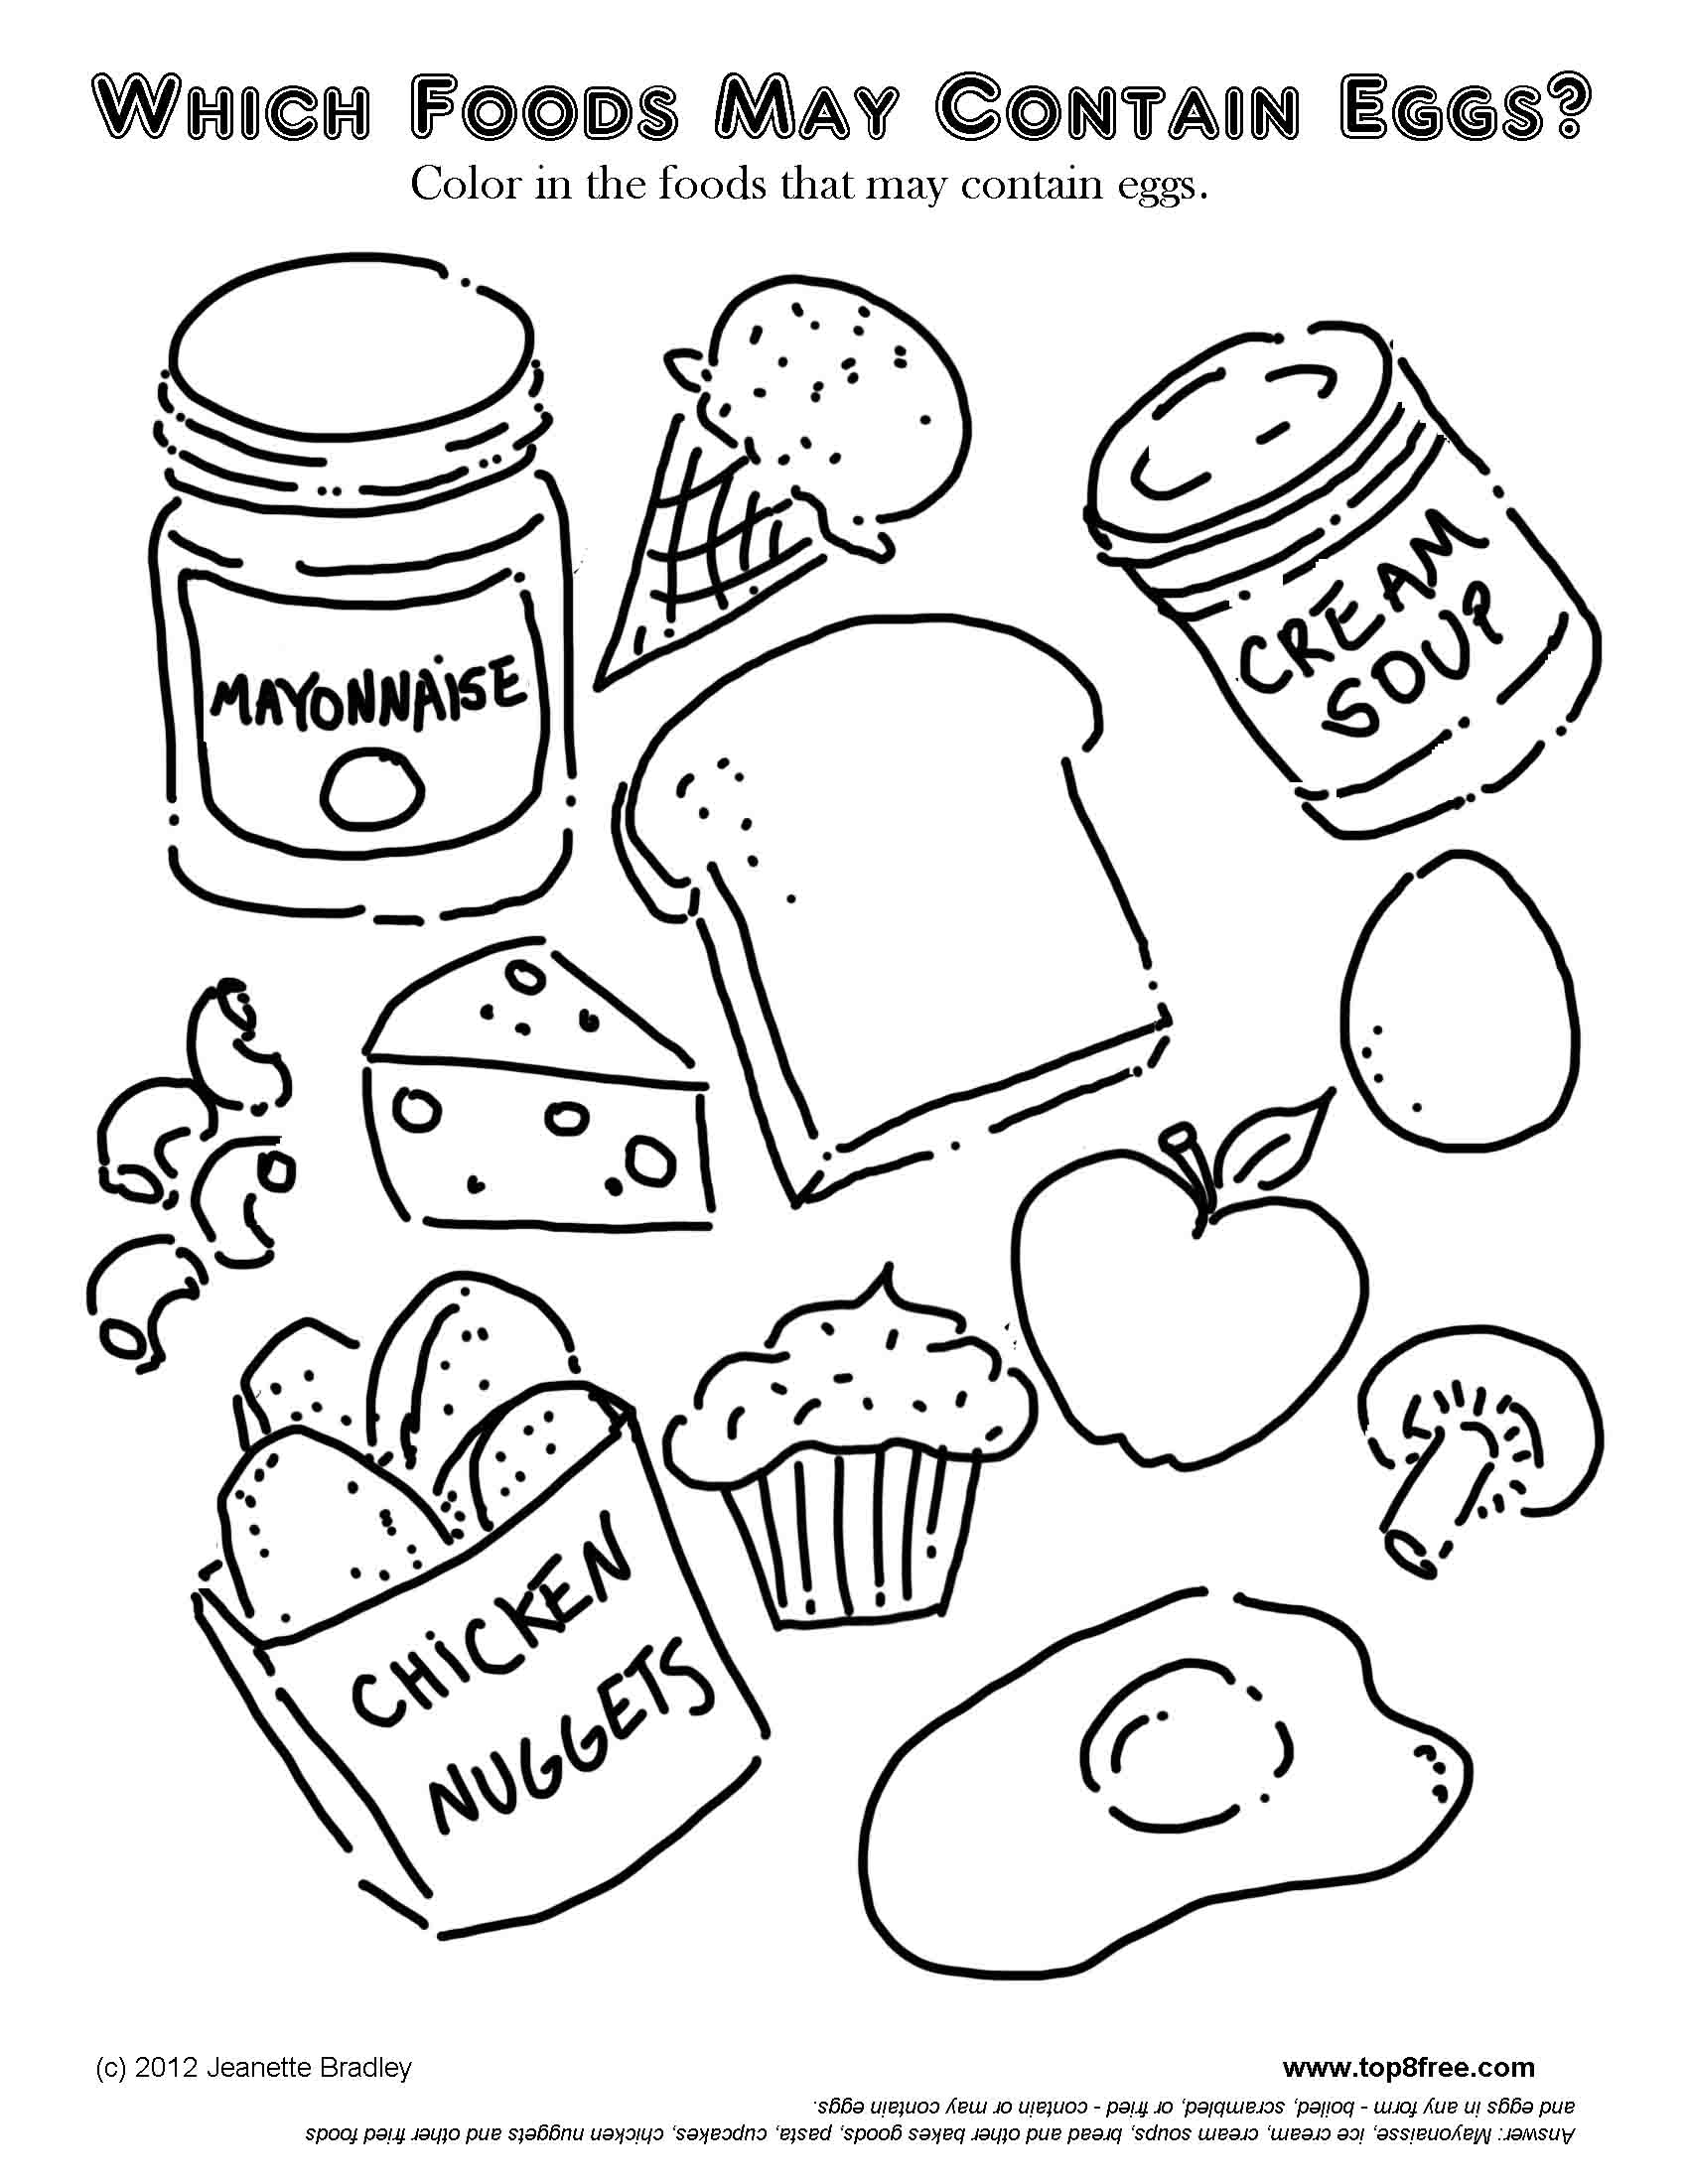 coloring cute food pictures cute food coloring pages carrots free printable coloring pictures cute food coloring